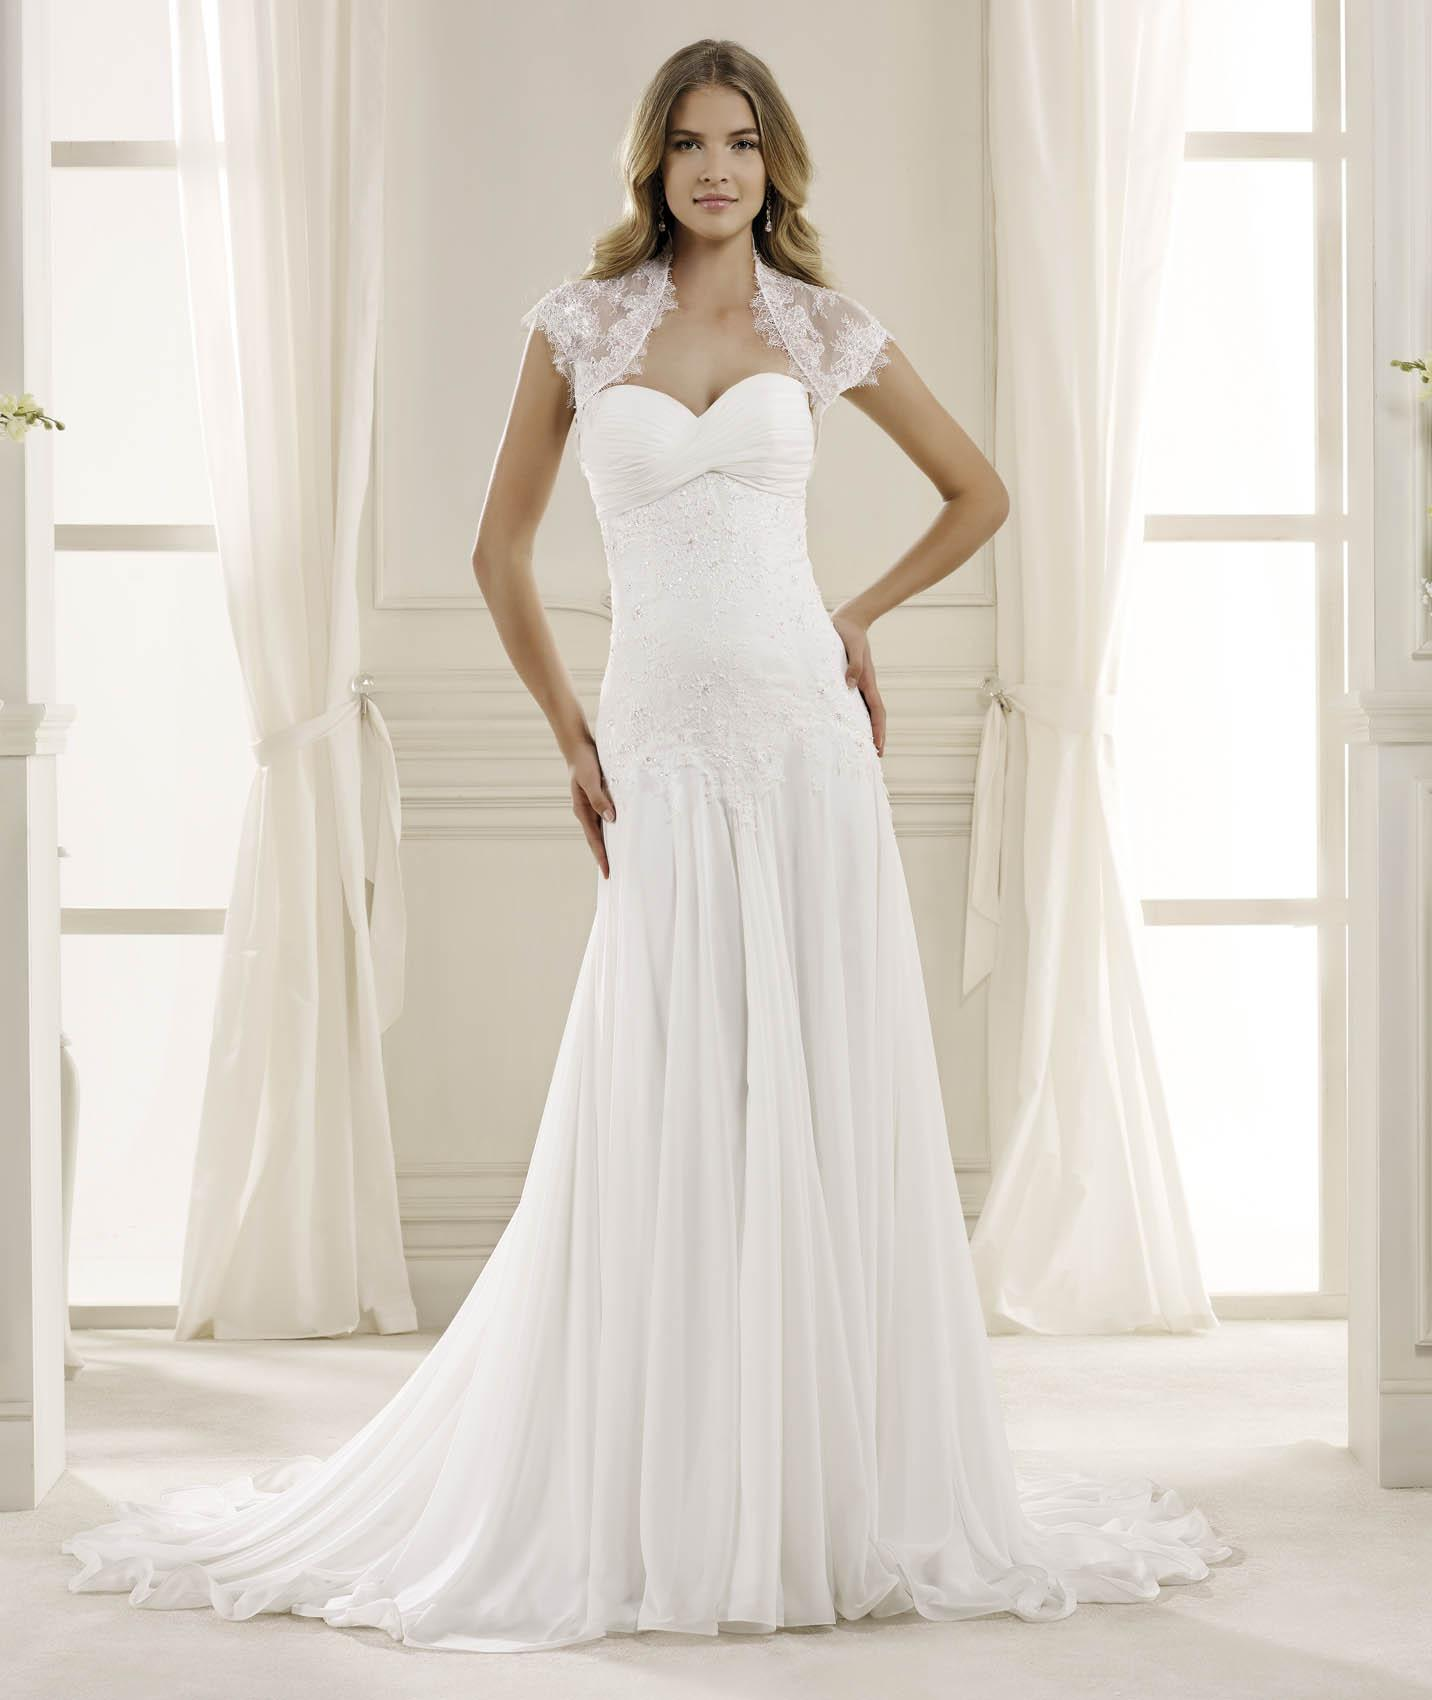 Elegant Sheath/Column Sweetheart Beading&Sequins Lace Sweep/Brush Train Chiffon Wedding Dresses